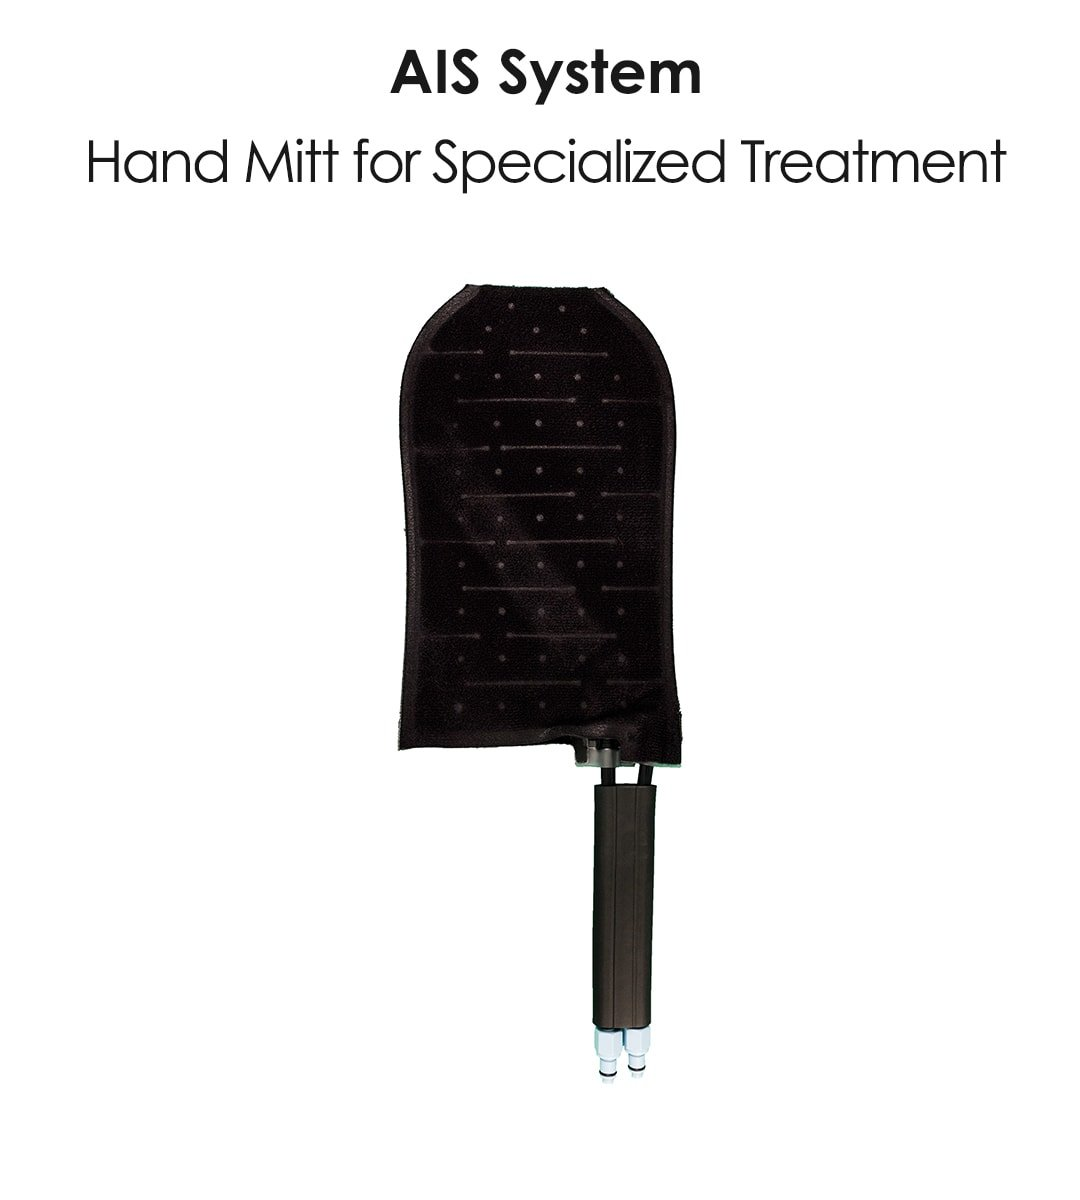 Cold Water Therapy Hand Mitt Accessory for Arctic Ice Machine - Circulating Personal Cooling Device for Hand, Wrist Pain, Aches, Swelling, Sprains, Inflammation, Injuries (Pad Only)